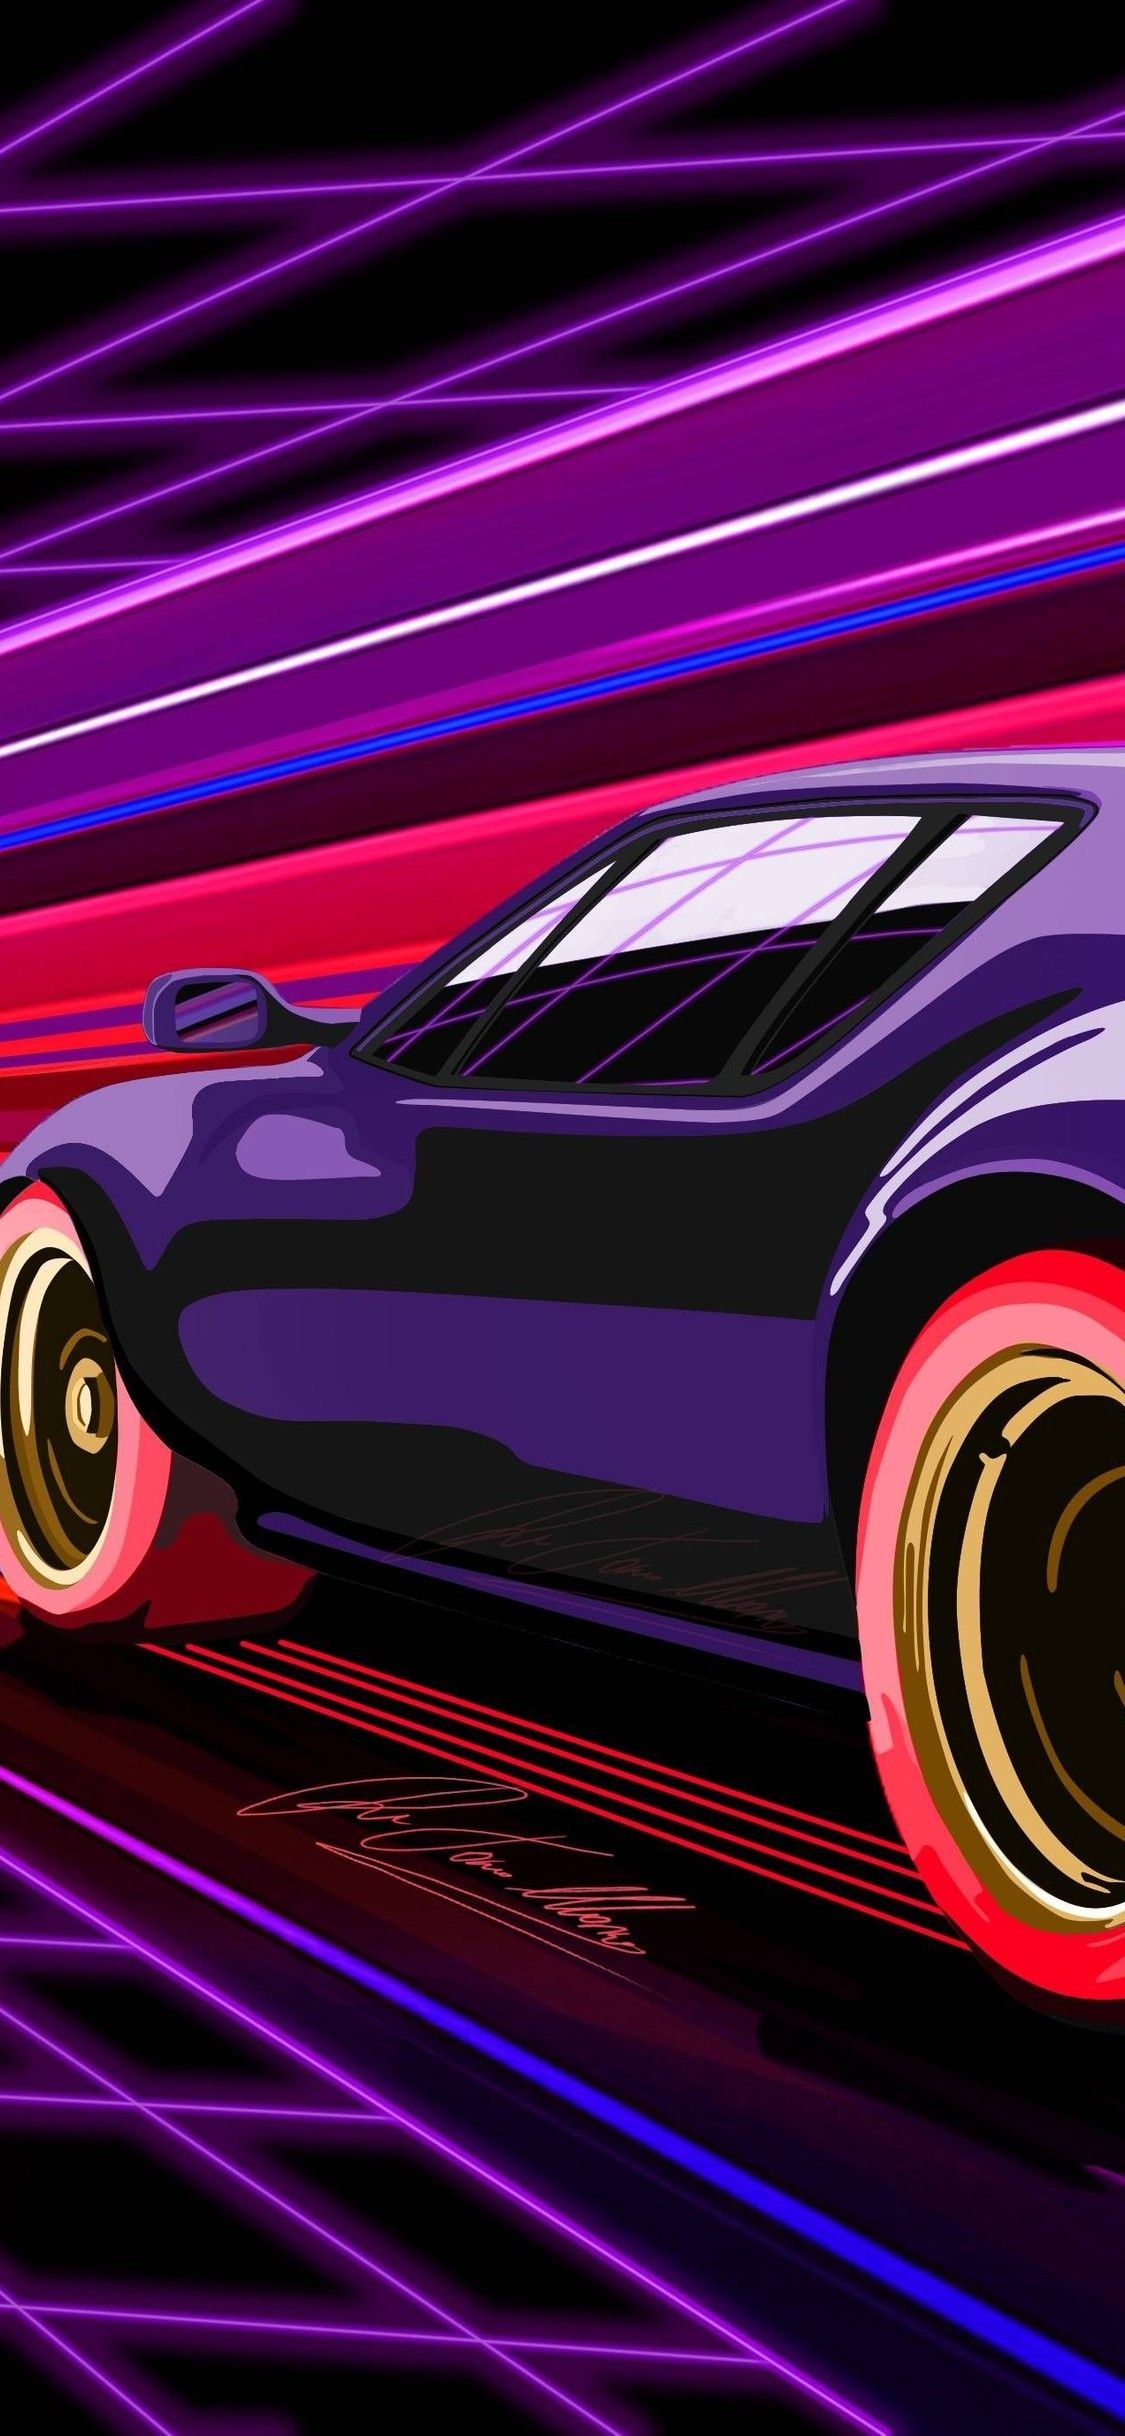 Retro Racing Muscle Car Iphone X Iphone Wallpapers Vaporwave